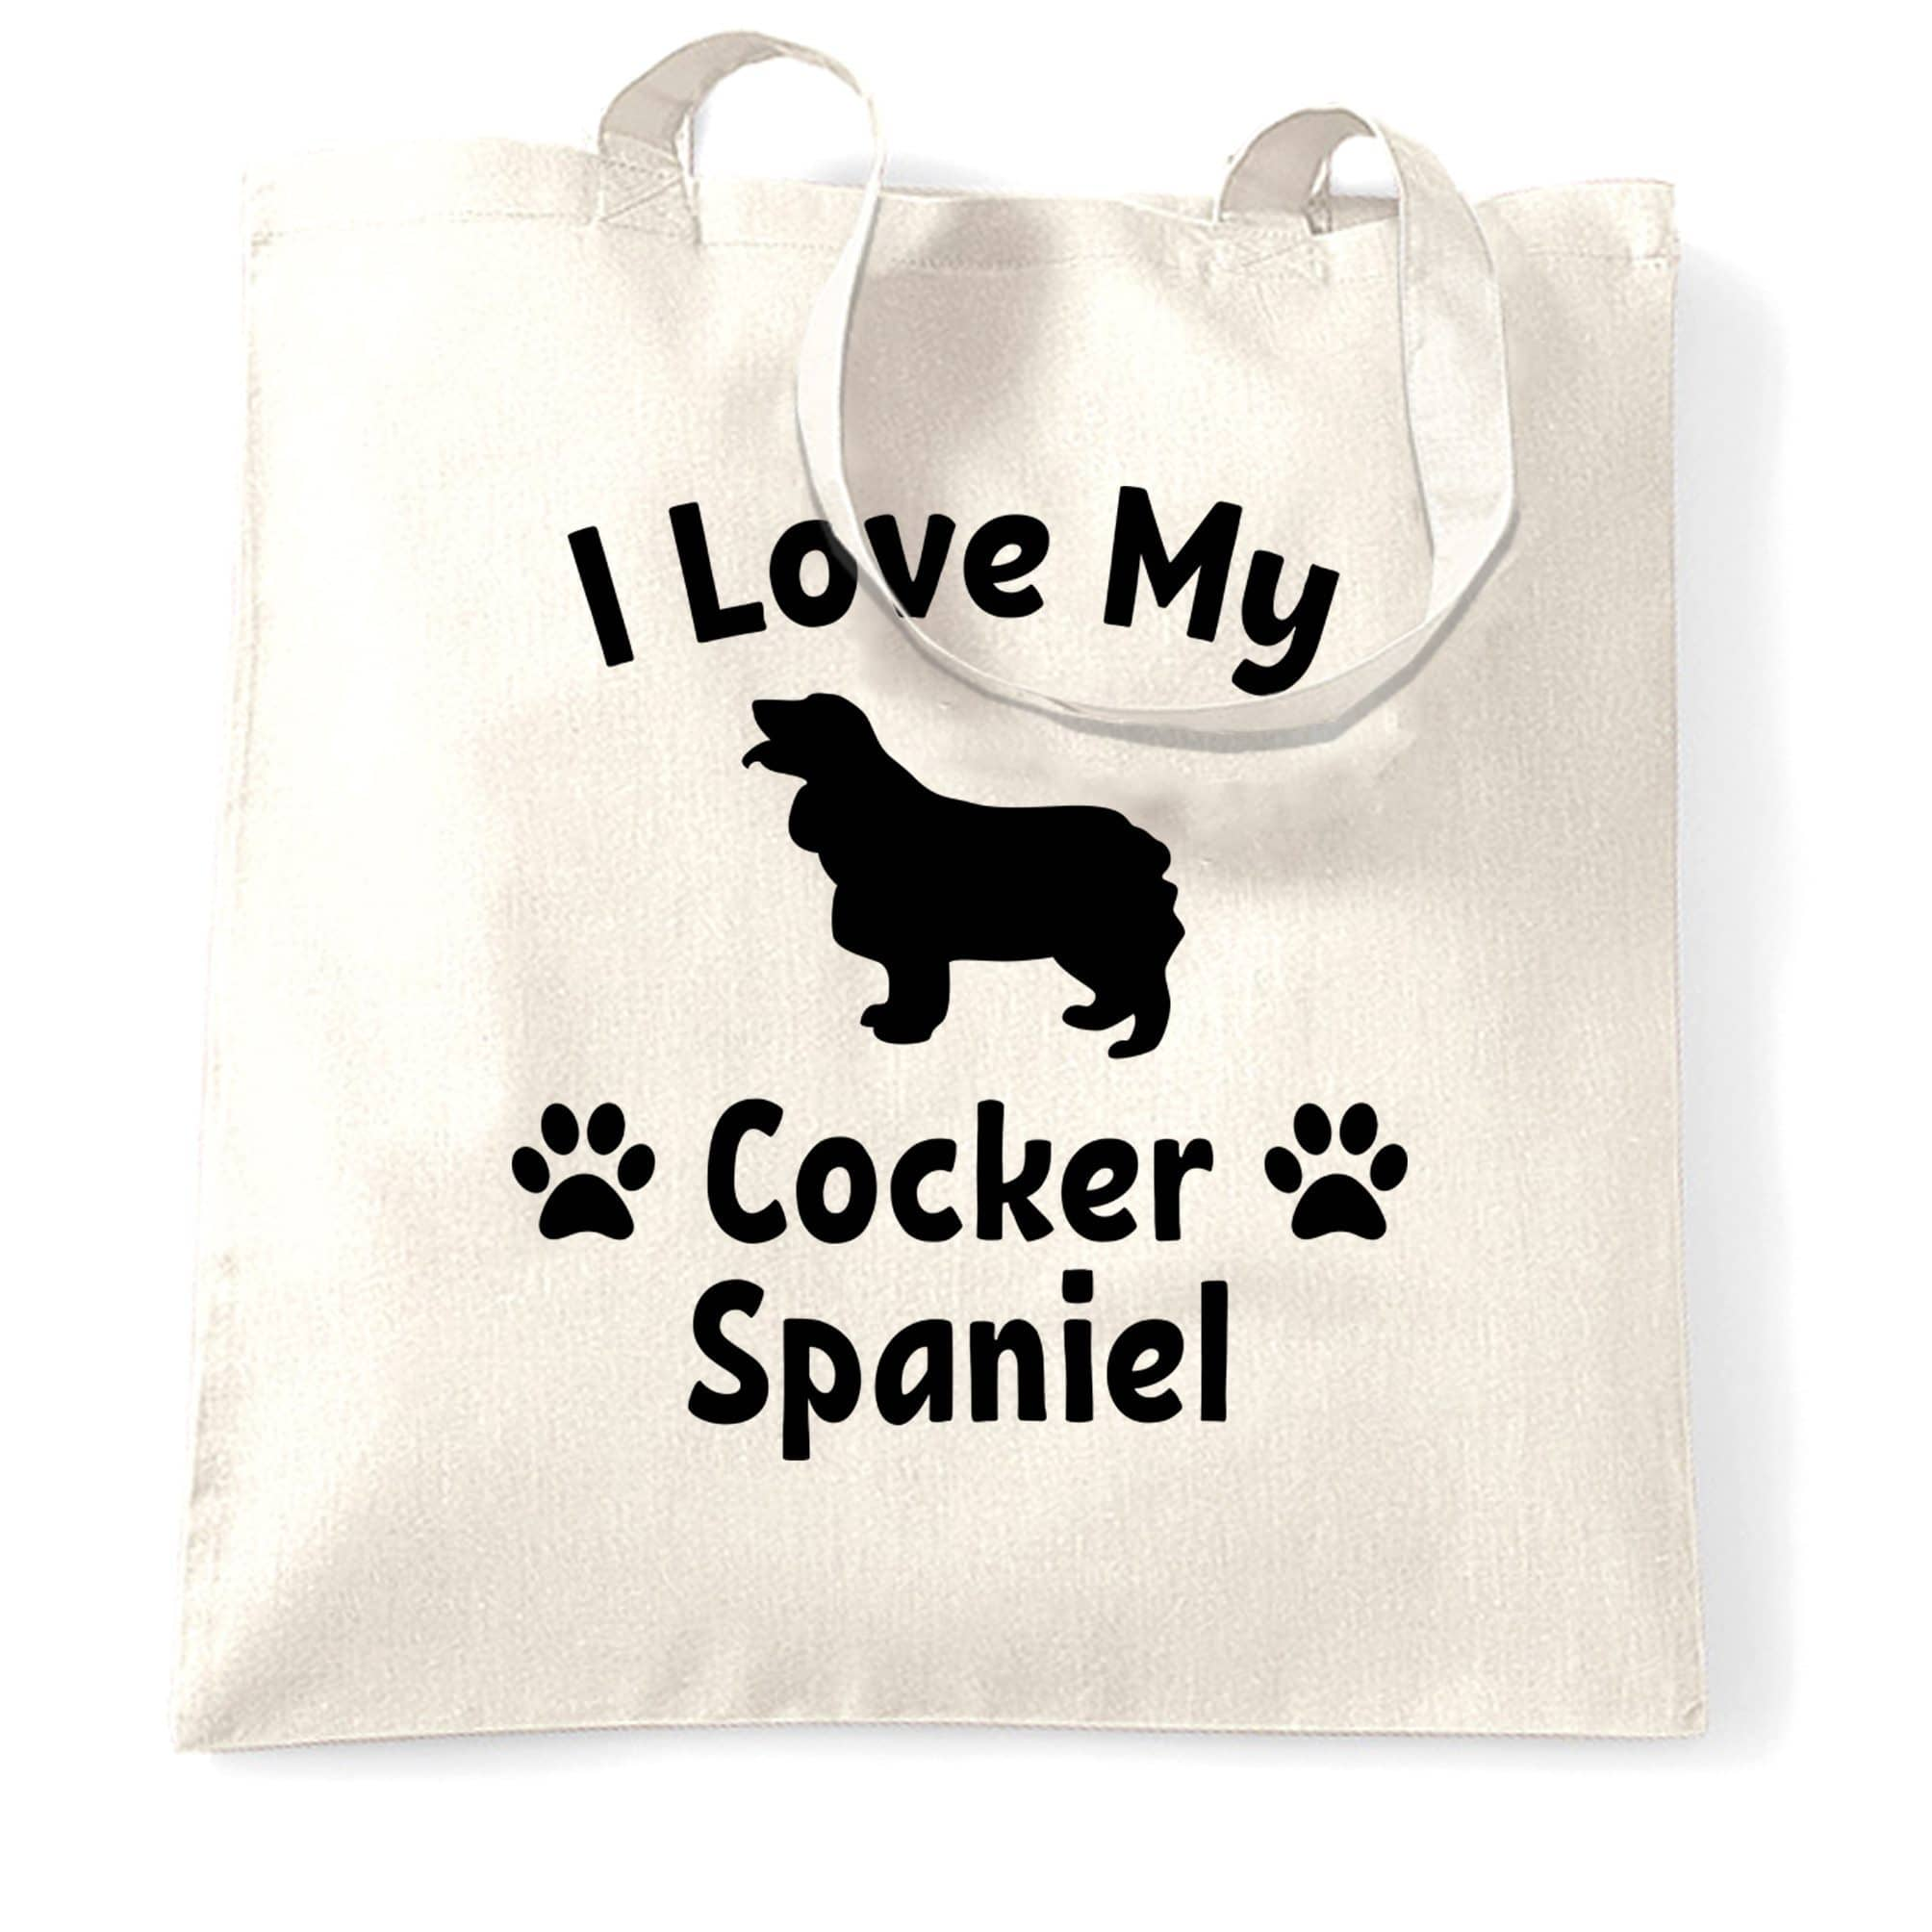 Dog Owner Tote Bag I Love My Cocker Spaniel